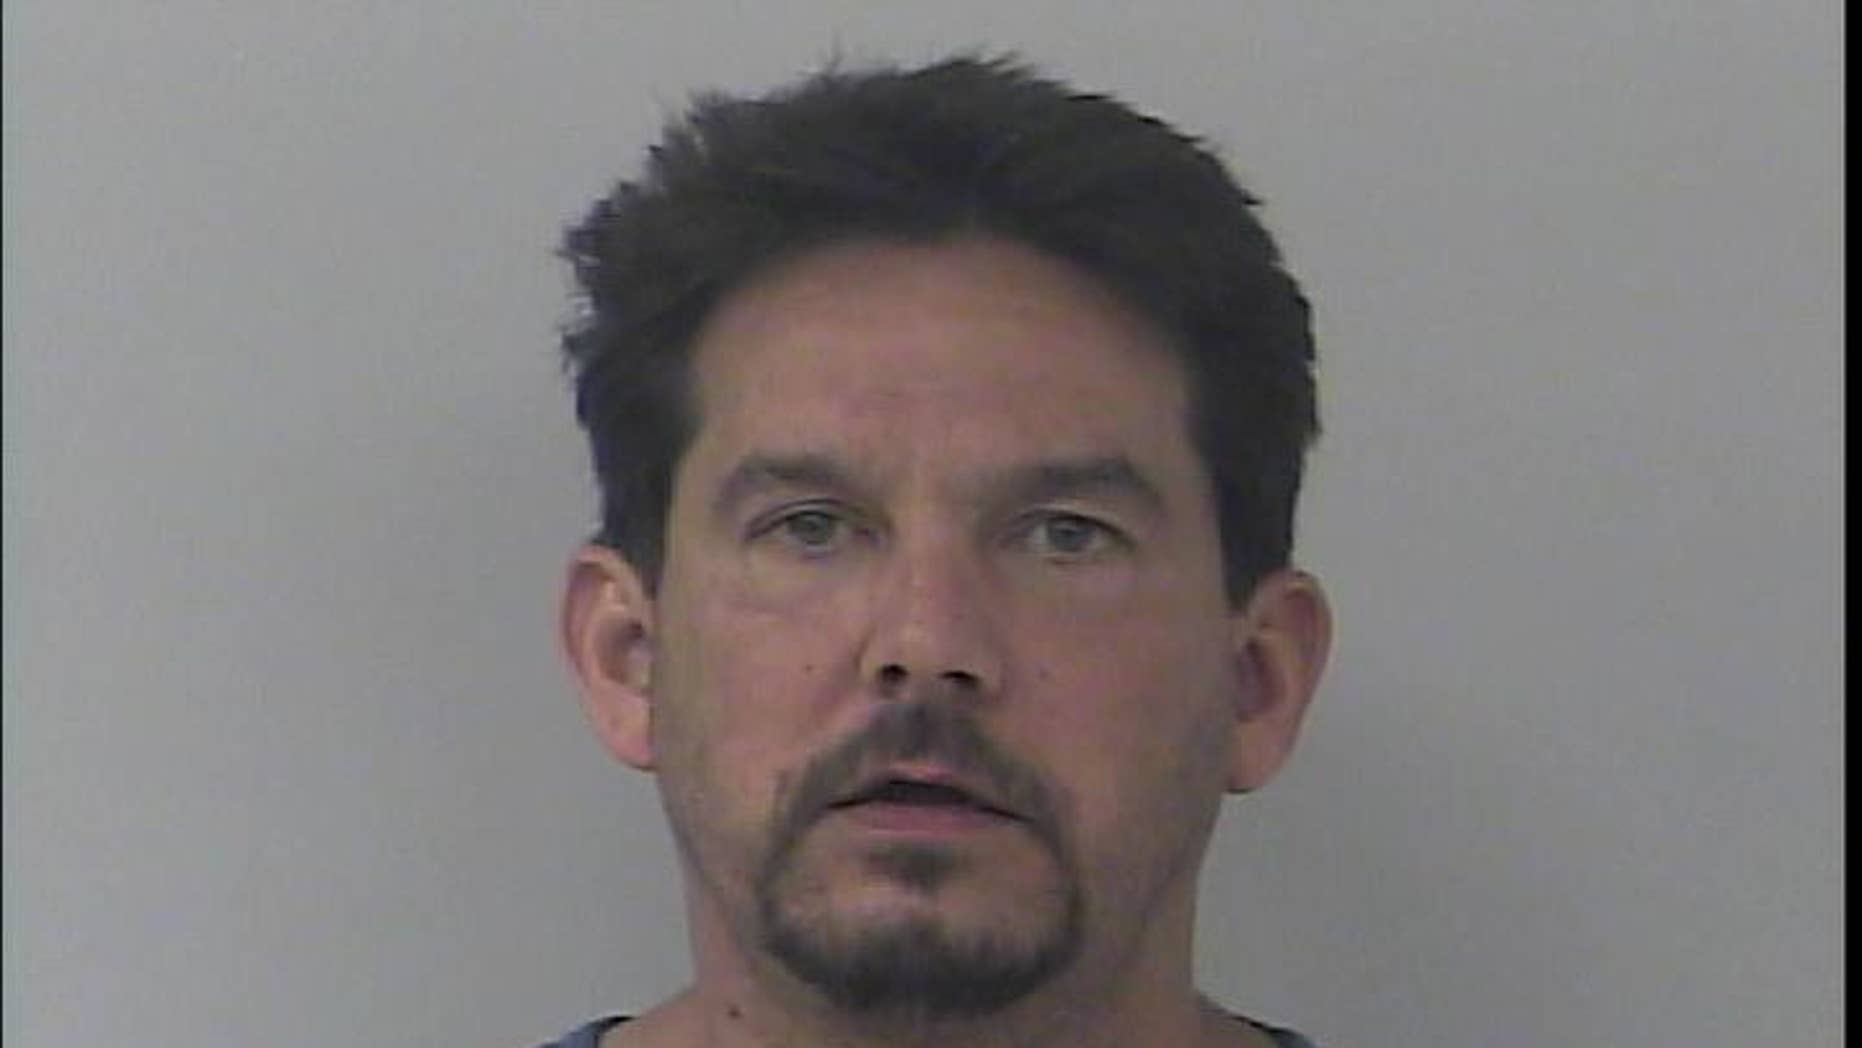 The 47-year-old was arrested on a battery charge, according to his inmate record.